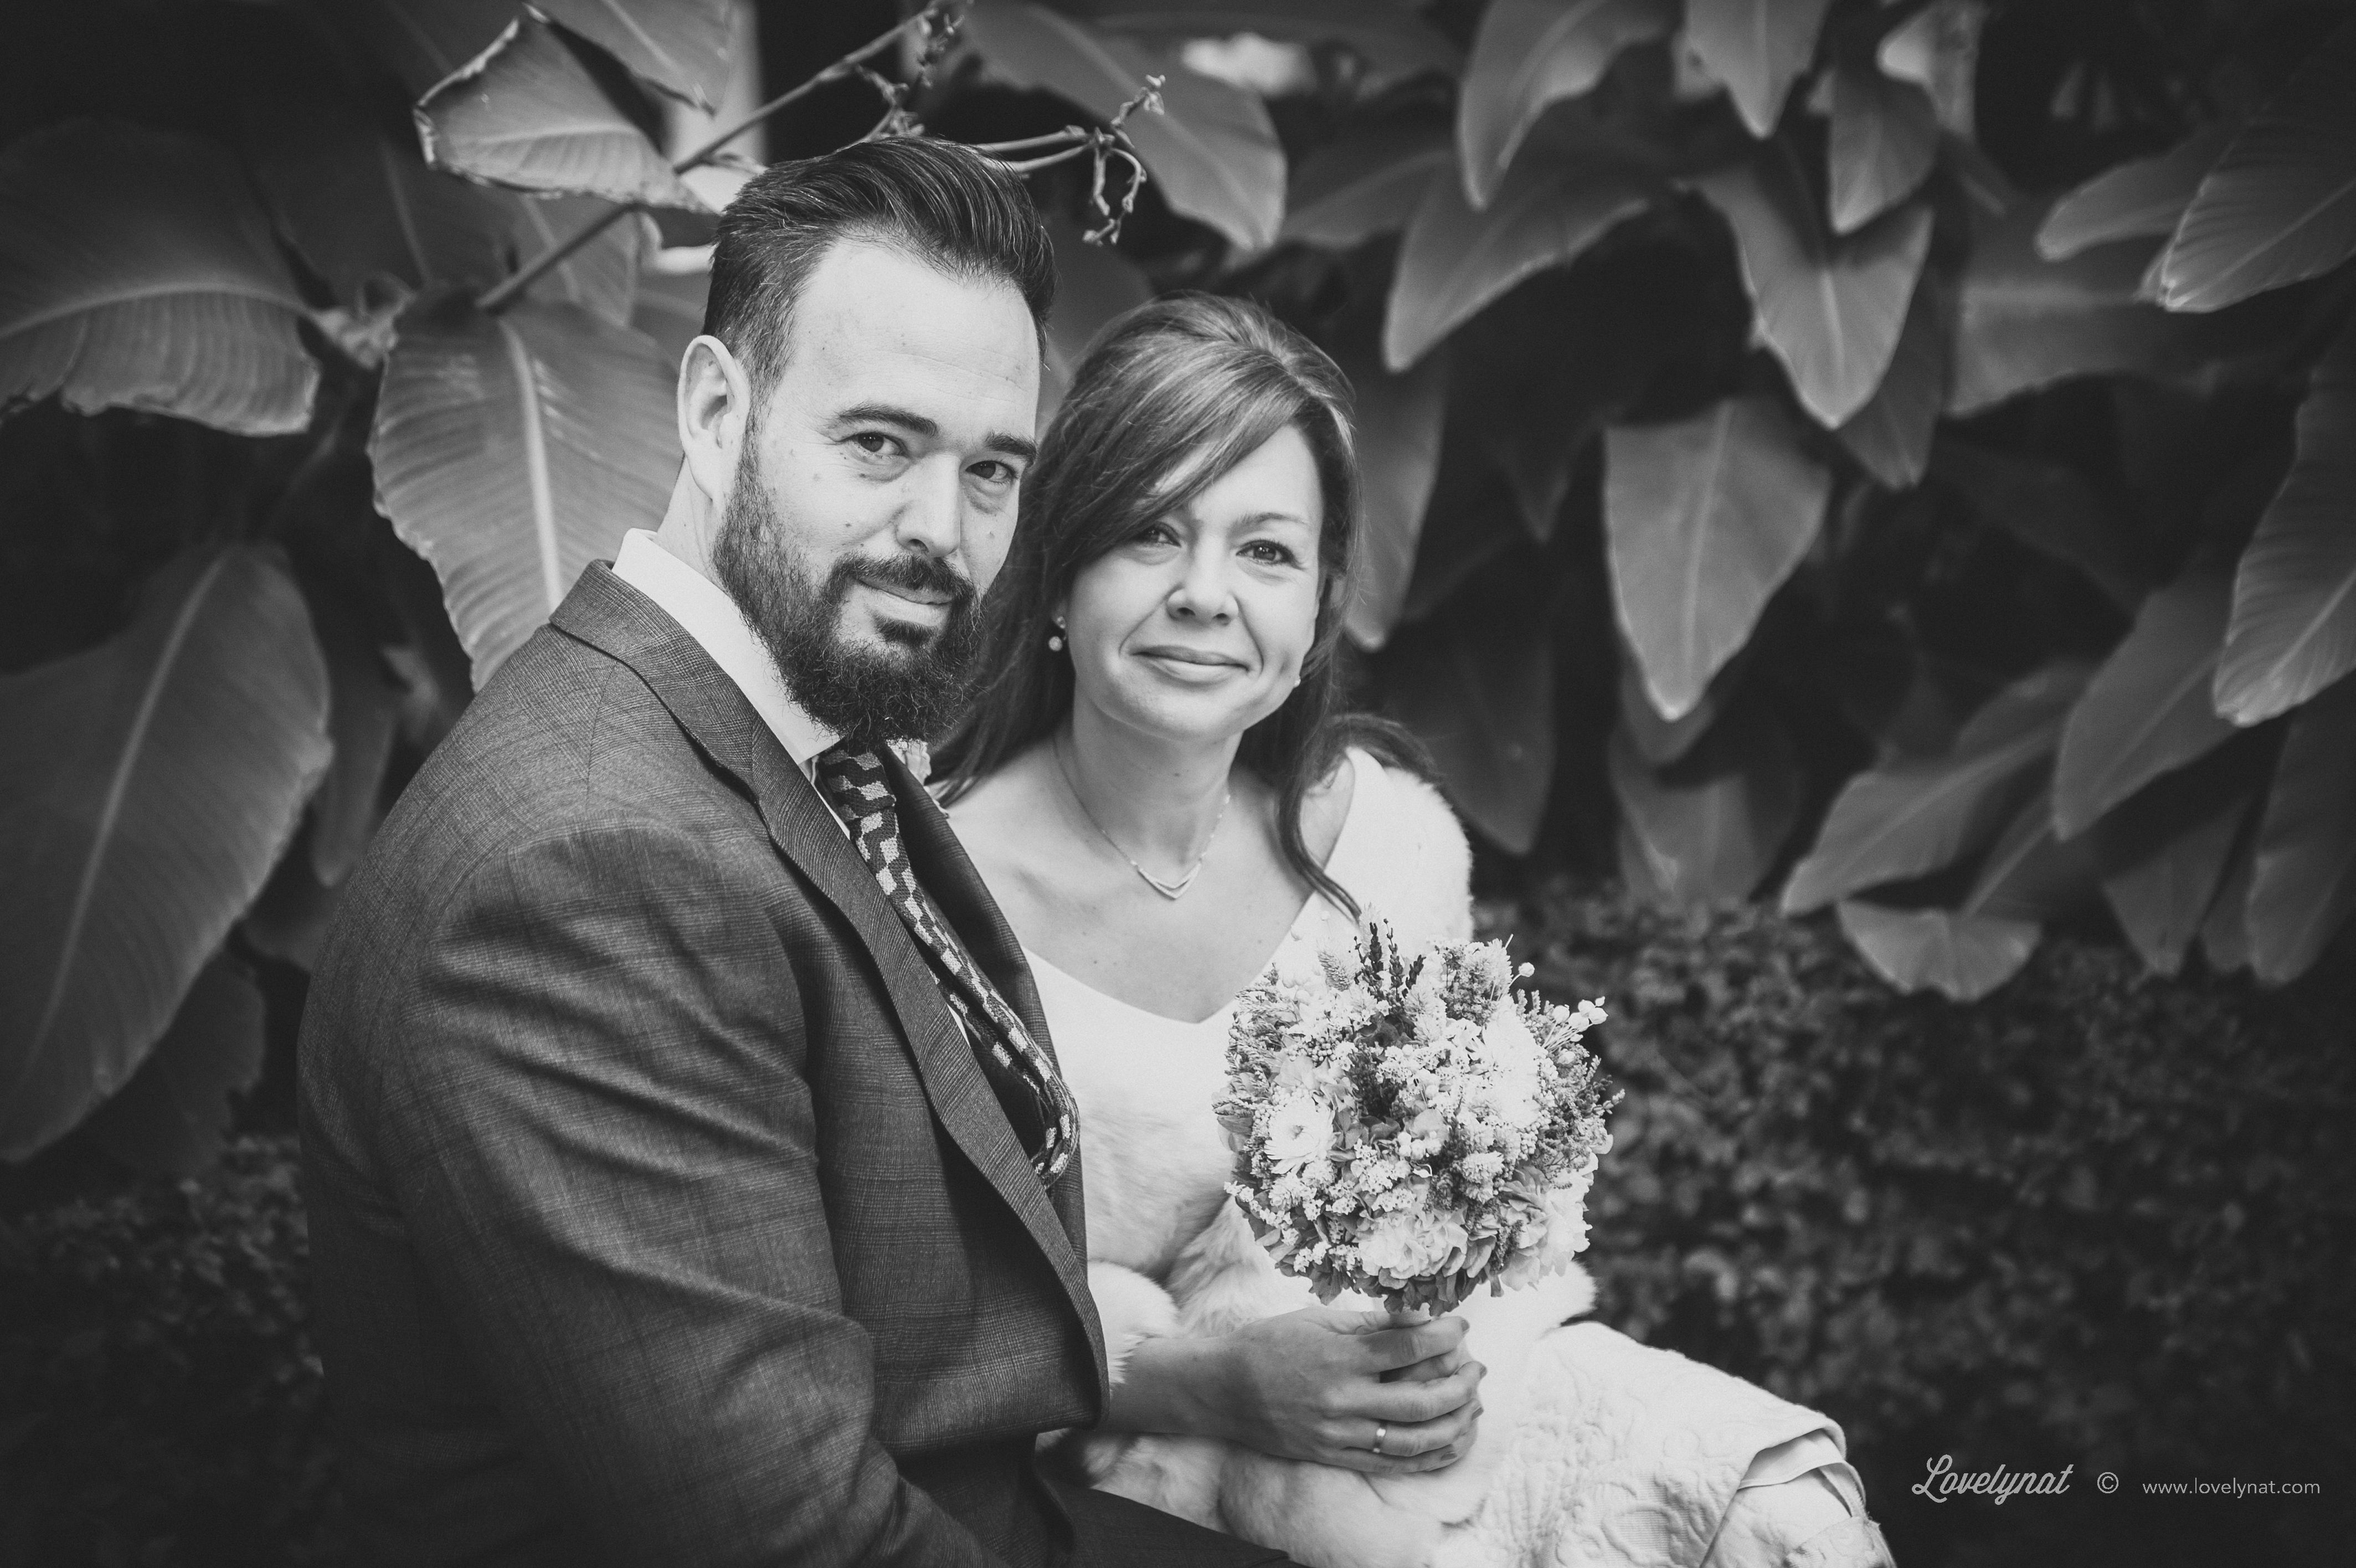 Antonio&Ester_Lovelynat-Photography_012_BW_result